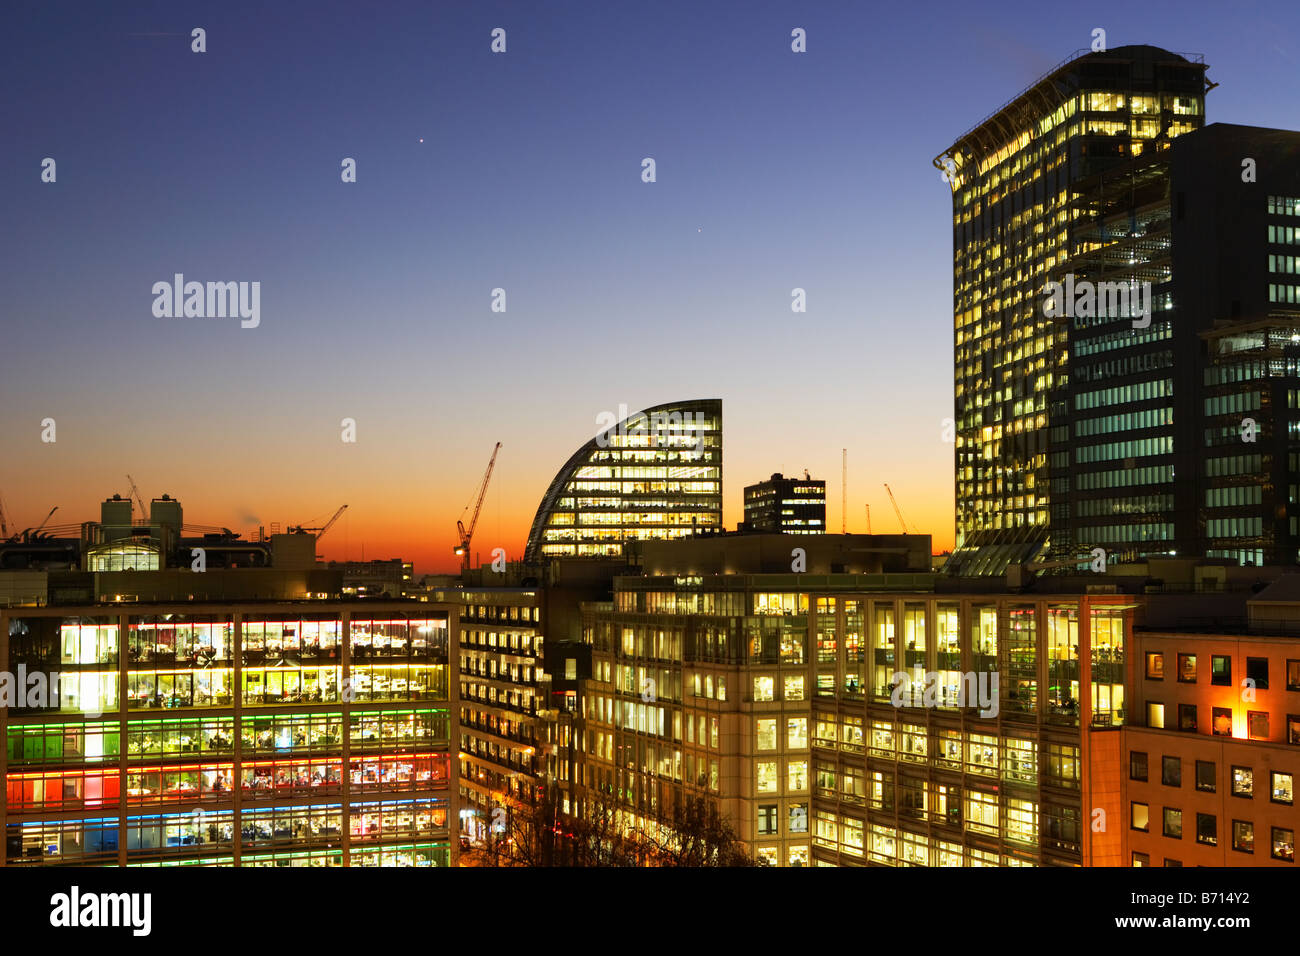 Night shot of city skyline London England - Stock Image